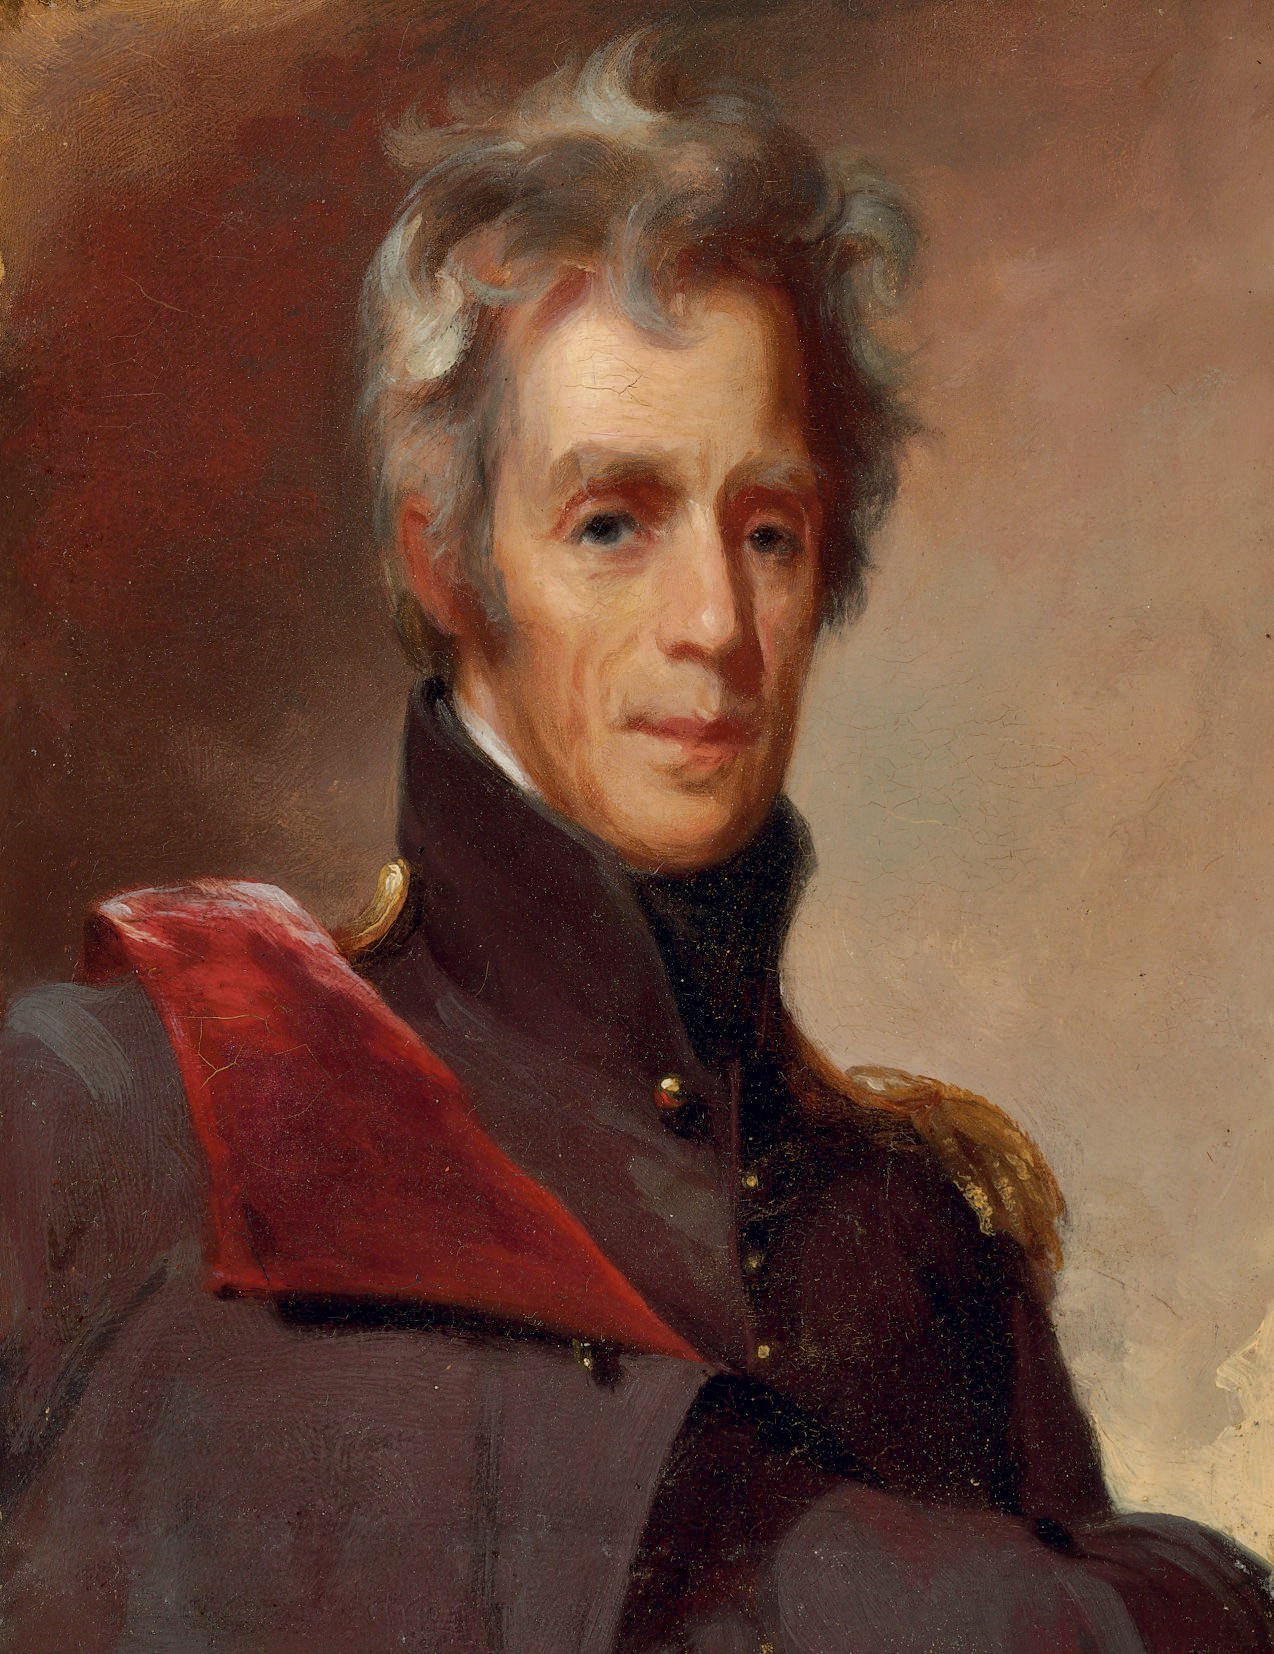 aqndrew jackson Andrew jackson was born on the border of north and south carolina in 1767 though a young boy during the revolution, he acted as a courier and witnessed the battle of hobkirk's hill as a british prisoner of war.